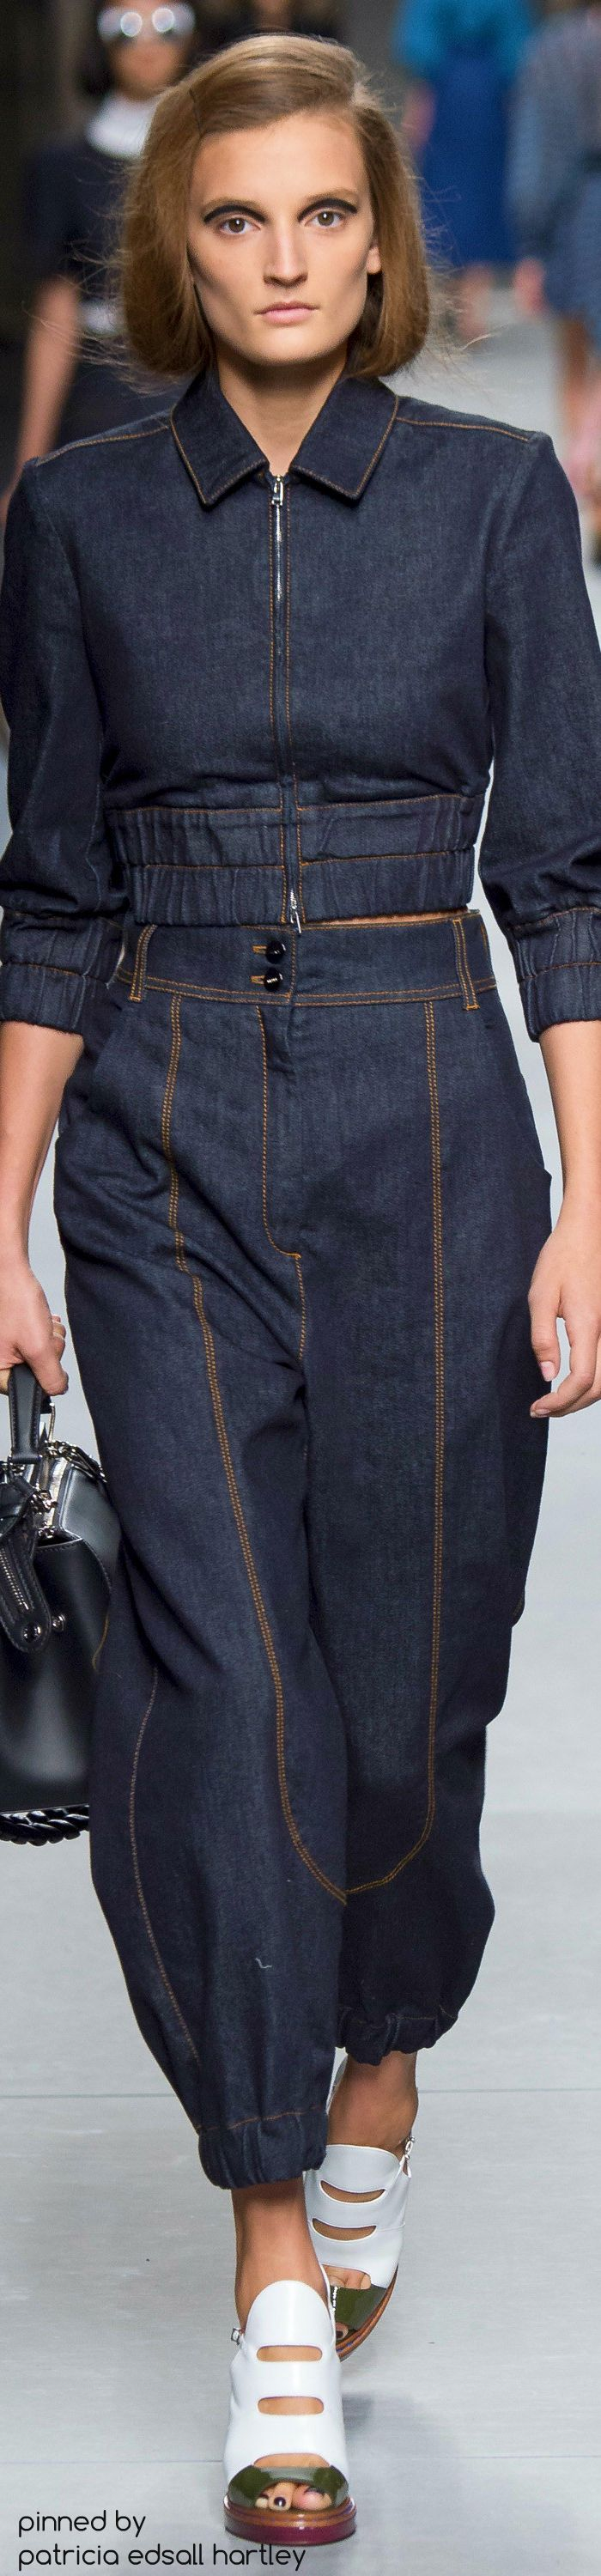 Fendi Runway-Loose denim outfit in dark color has a same retro look and masculine style. I think this design is comfortable and the model is surprisingly sexy in the style even if it is shapeless.